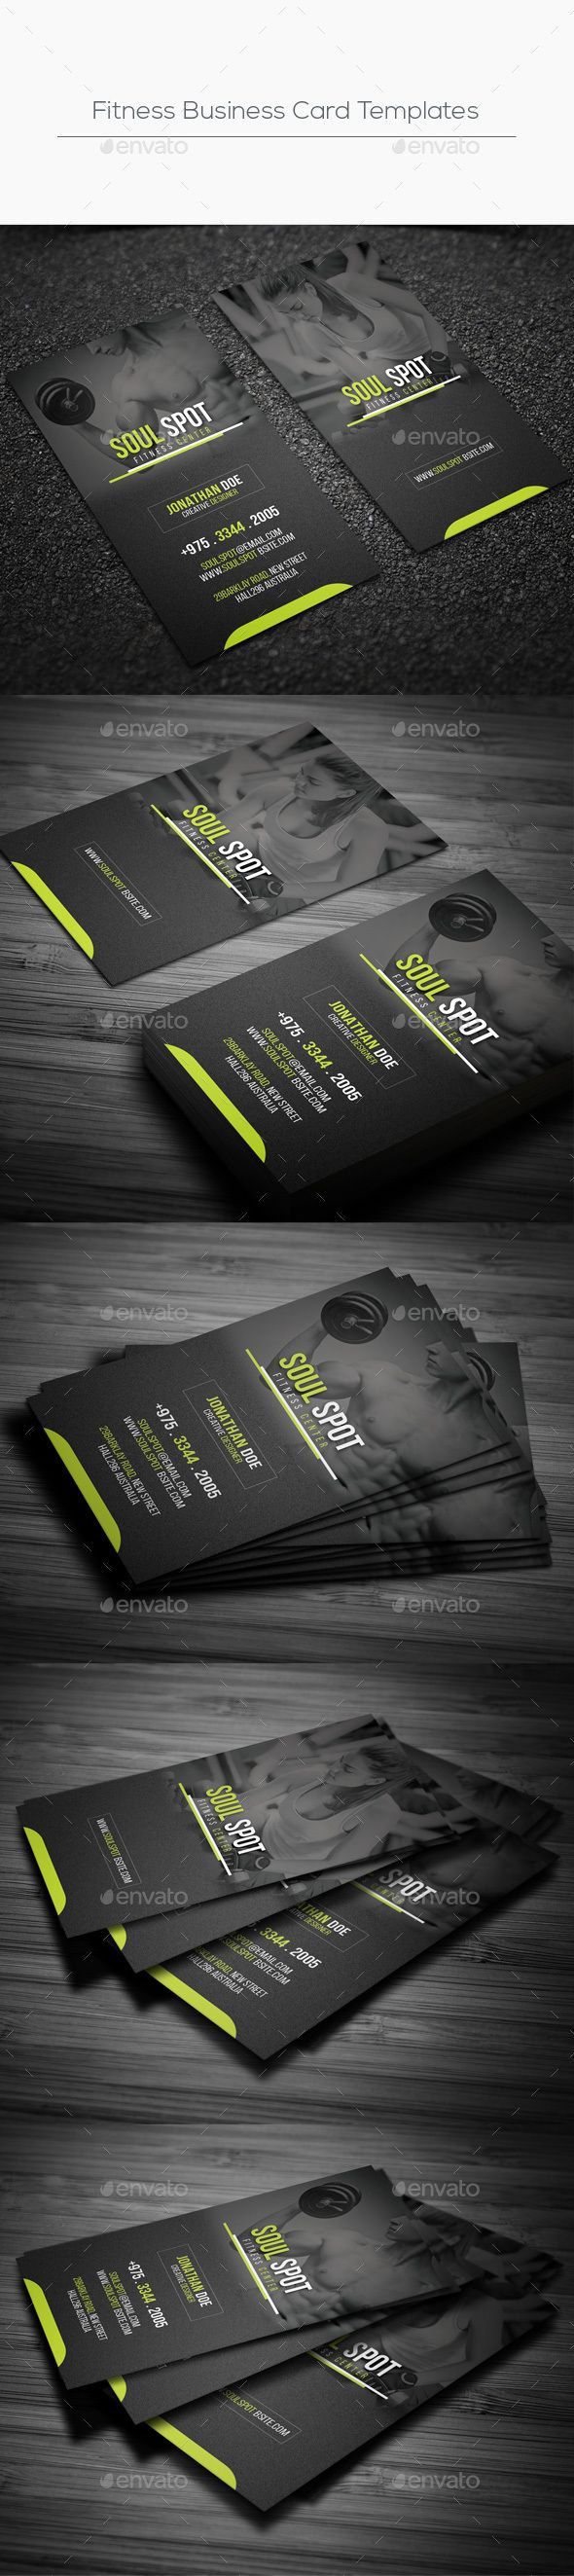 365 best design business cards images on pinterest carte de fitness business card templates reheart Gallery